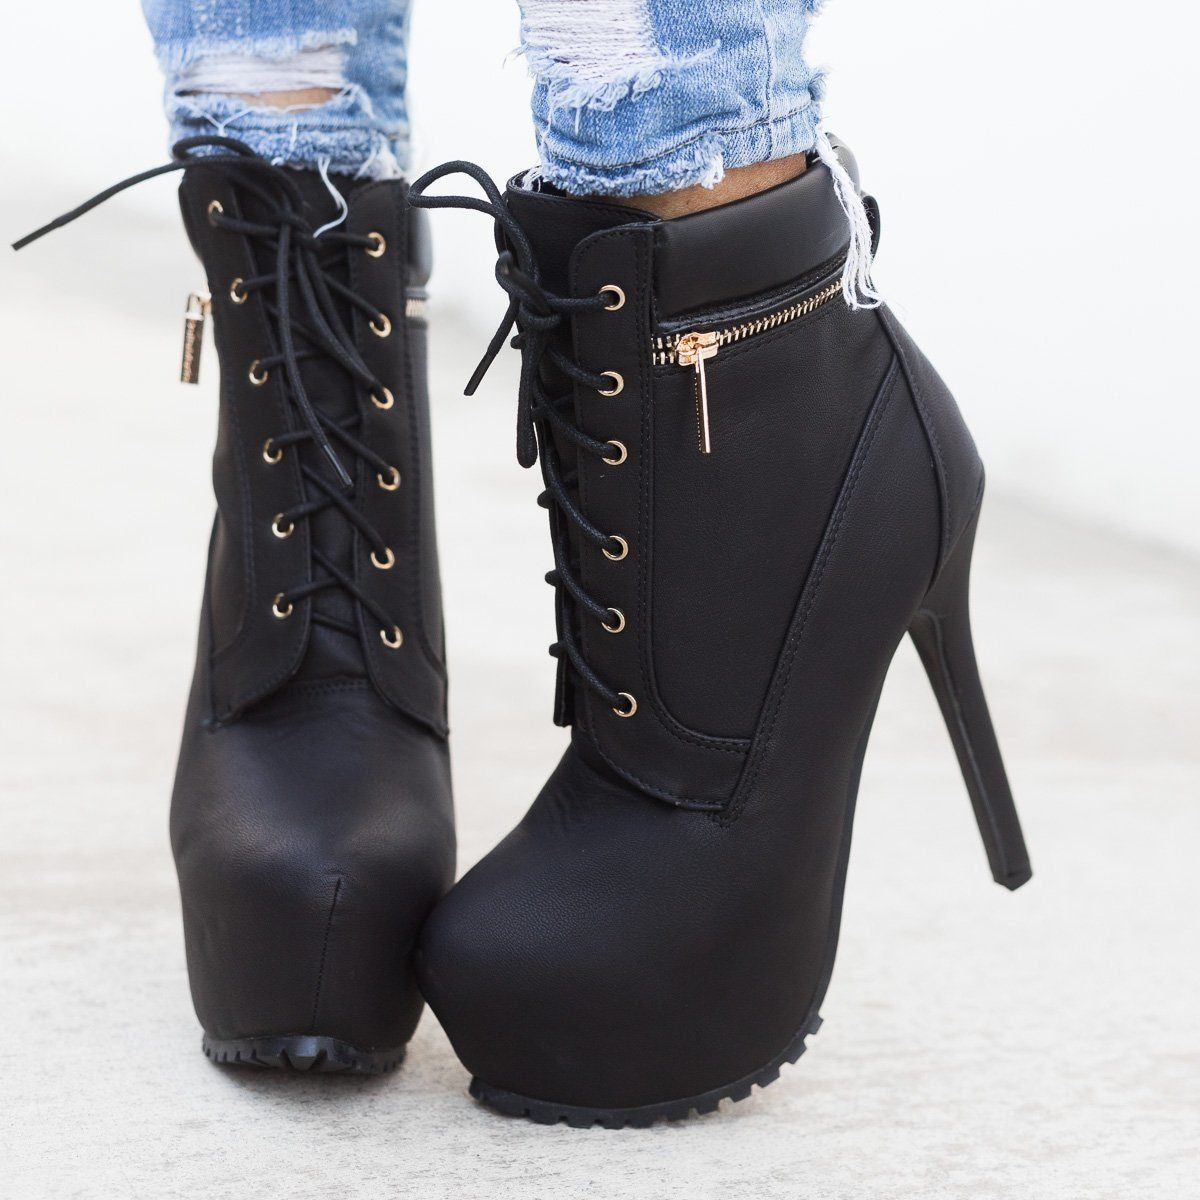 Edgy Lace-Up Platform Ankle Boots Bella